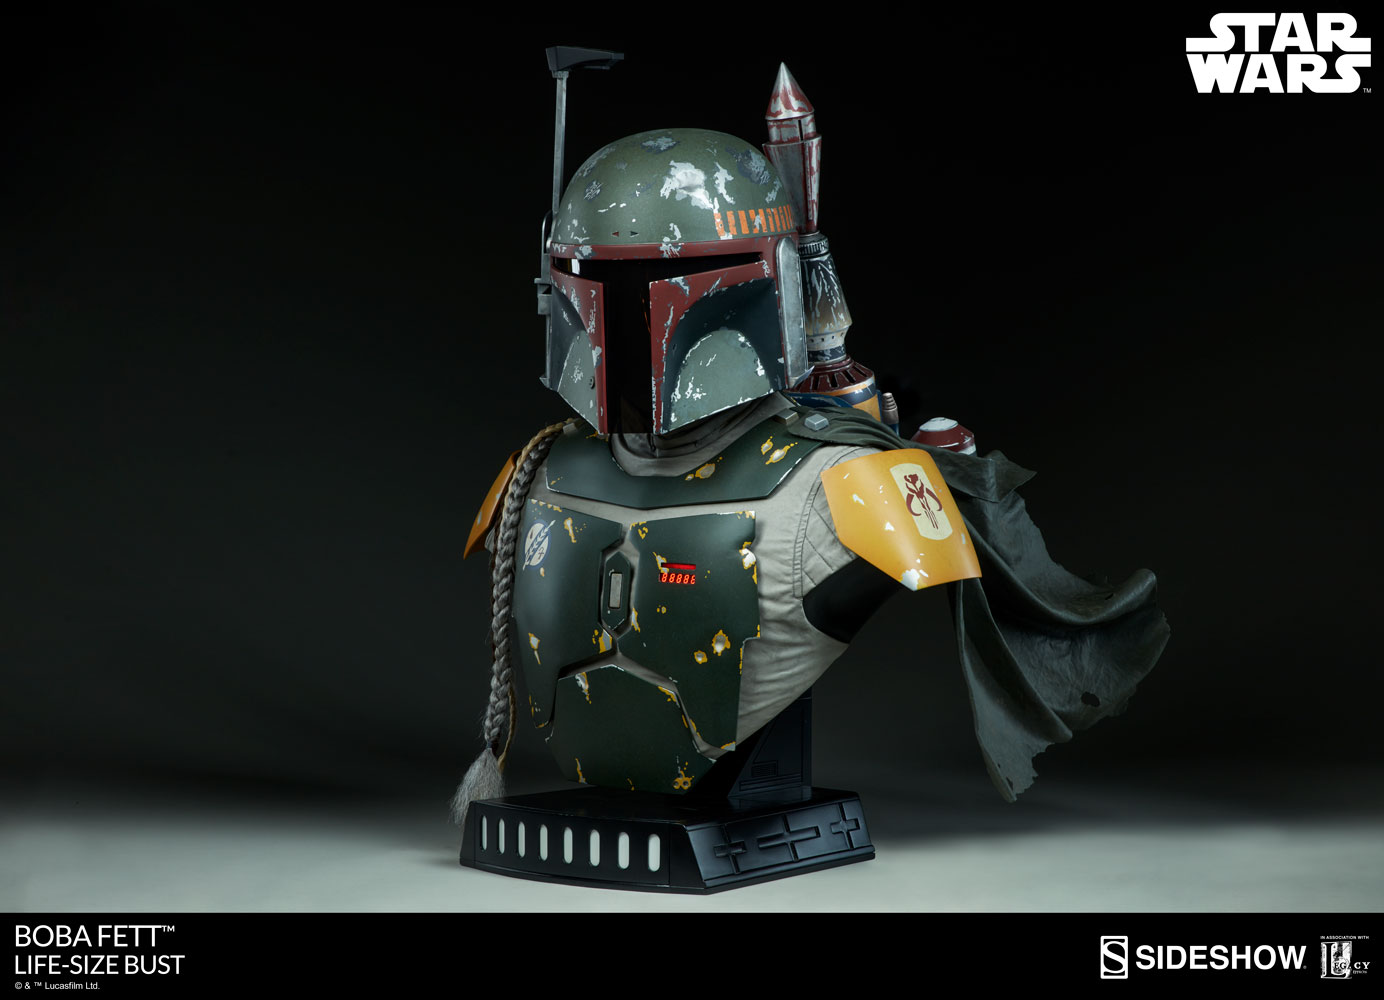 SW-Boba-Gett-life-size-bust-06